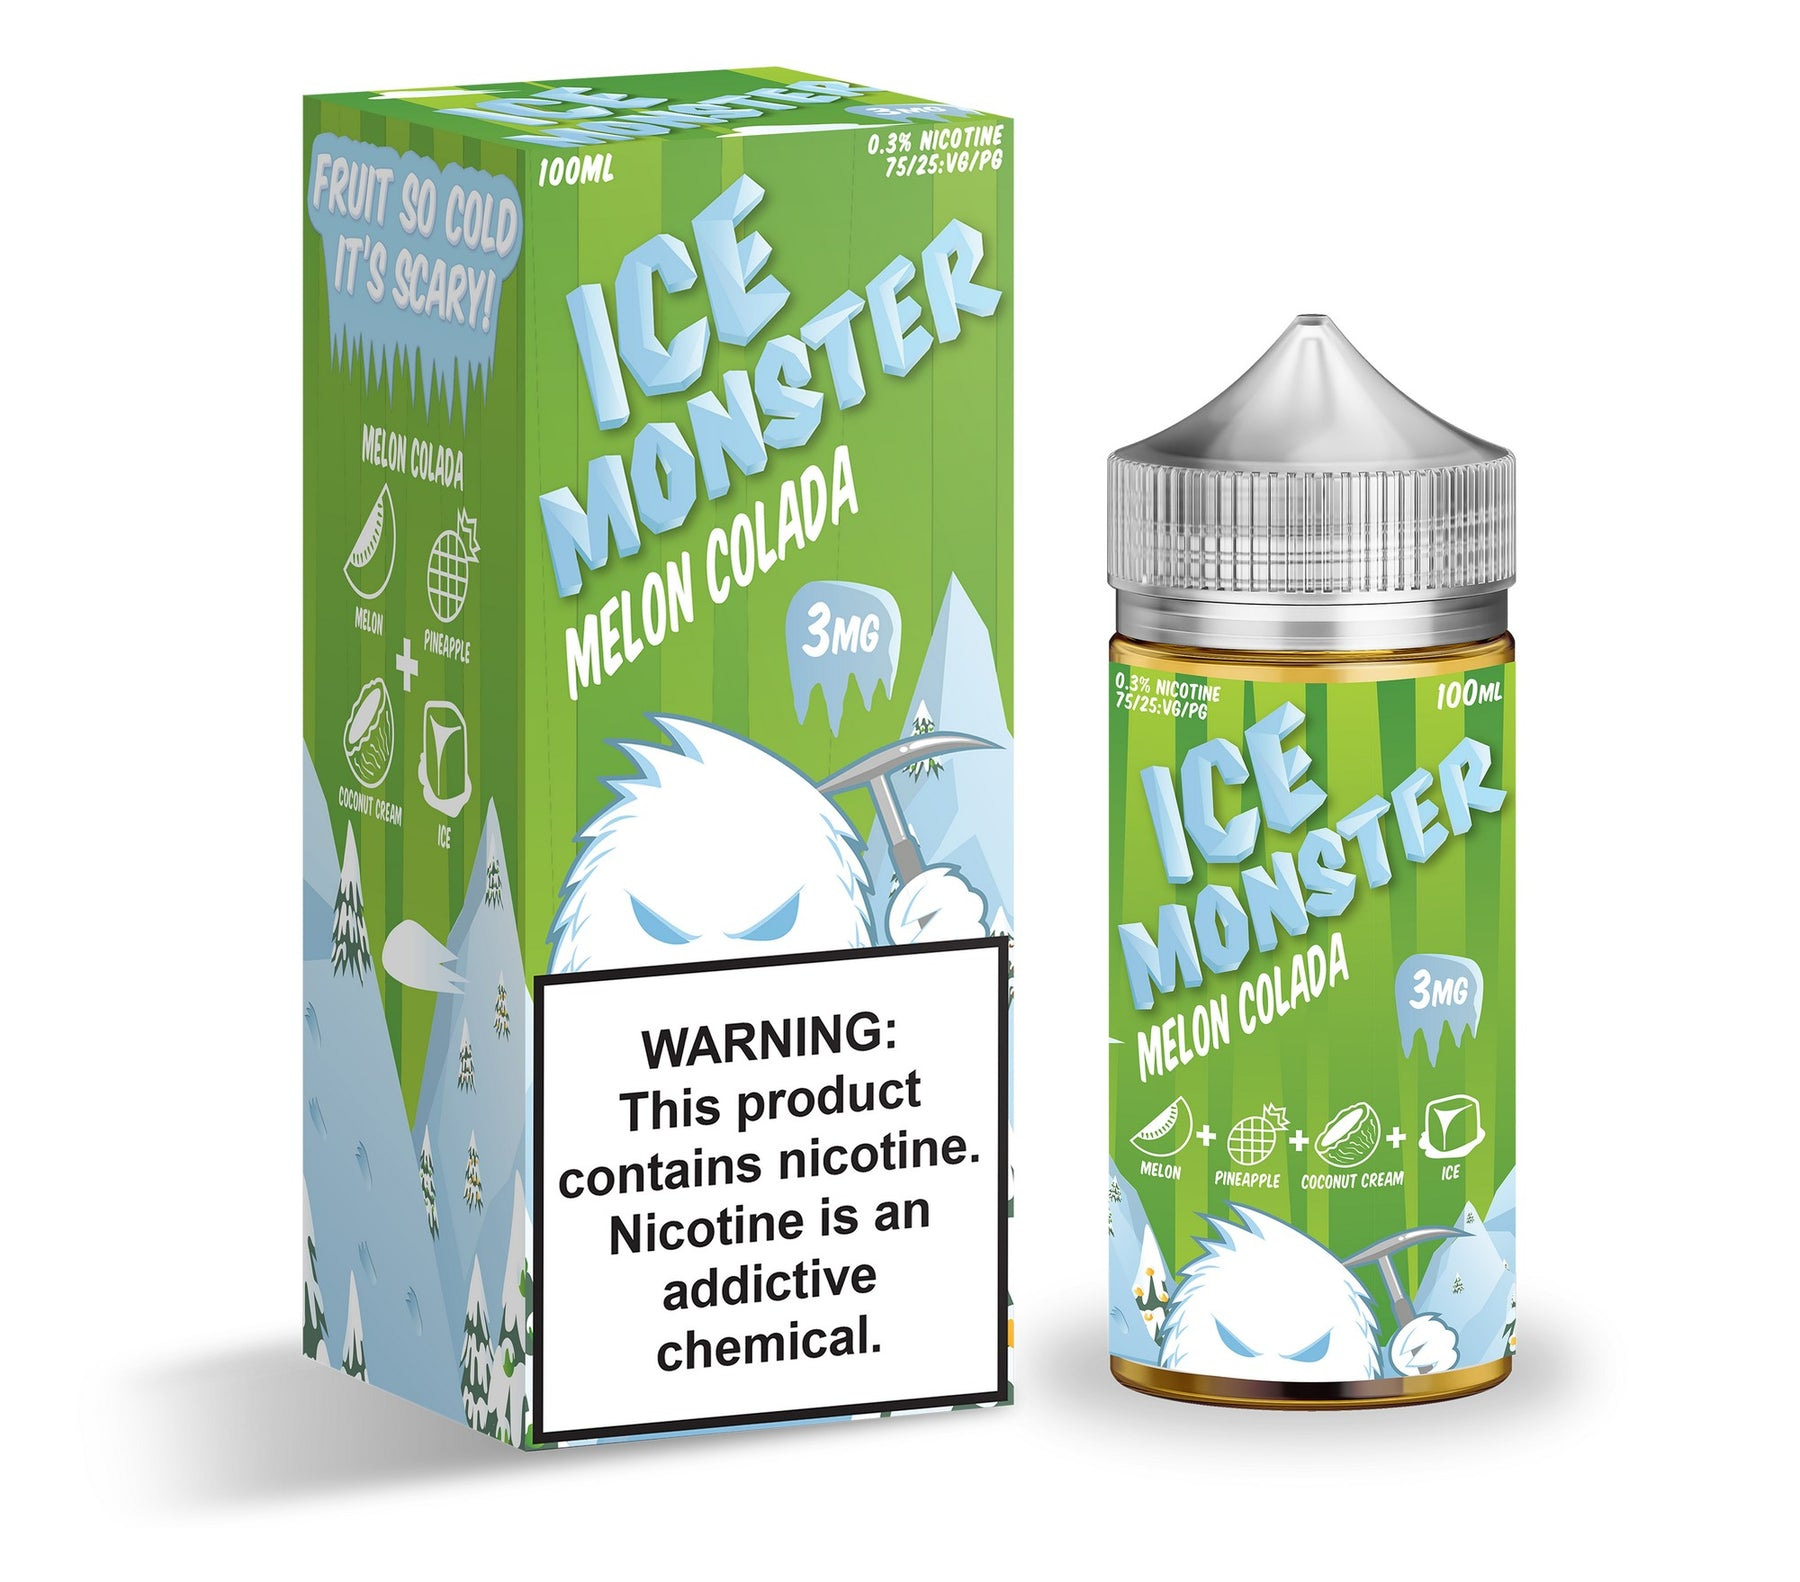 Melon Colada by Ice Monster eJuice 100ml - 120ml.co - Best Premium eJuice and Vapor Product Store